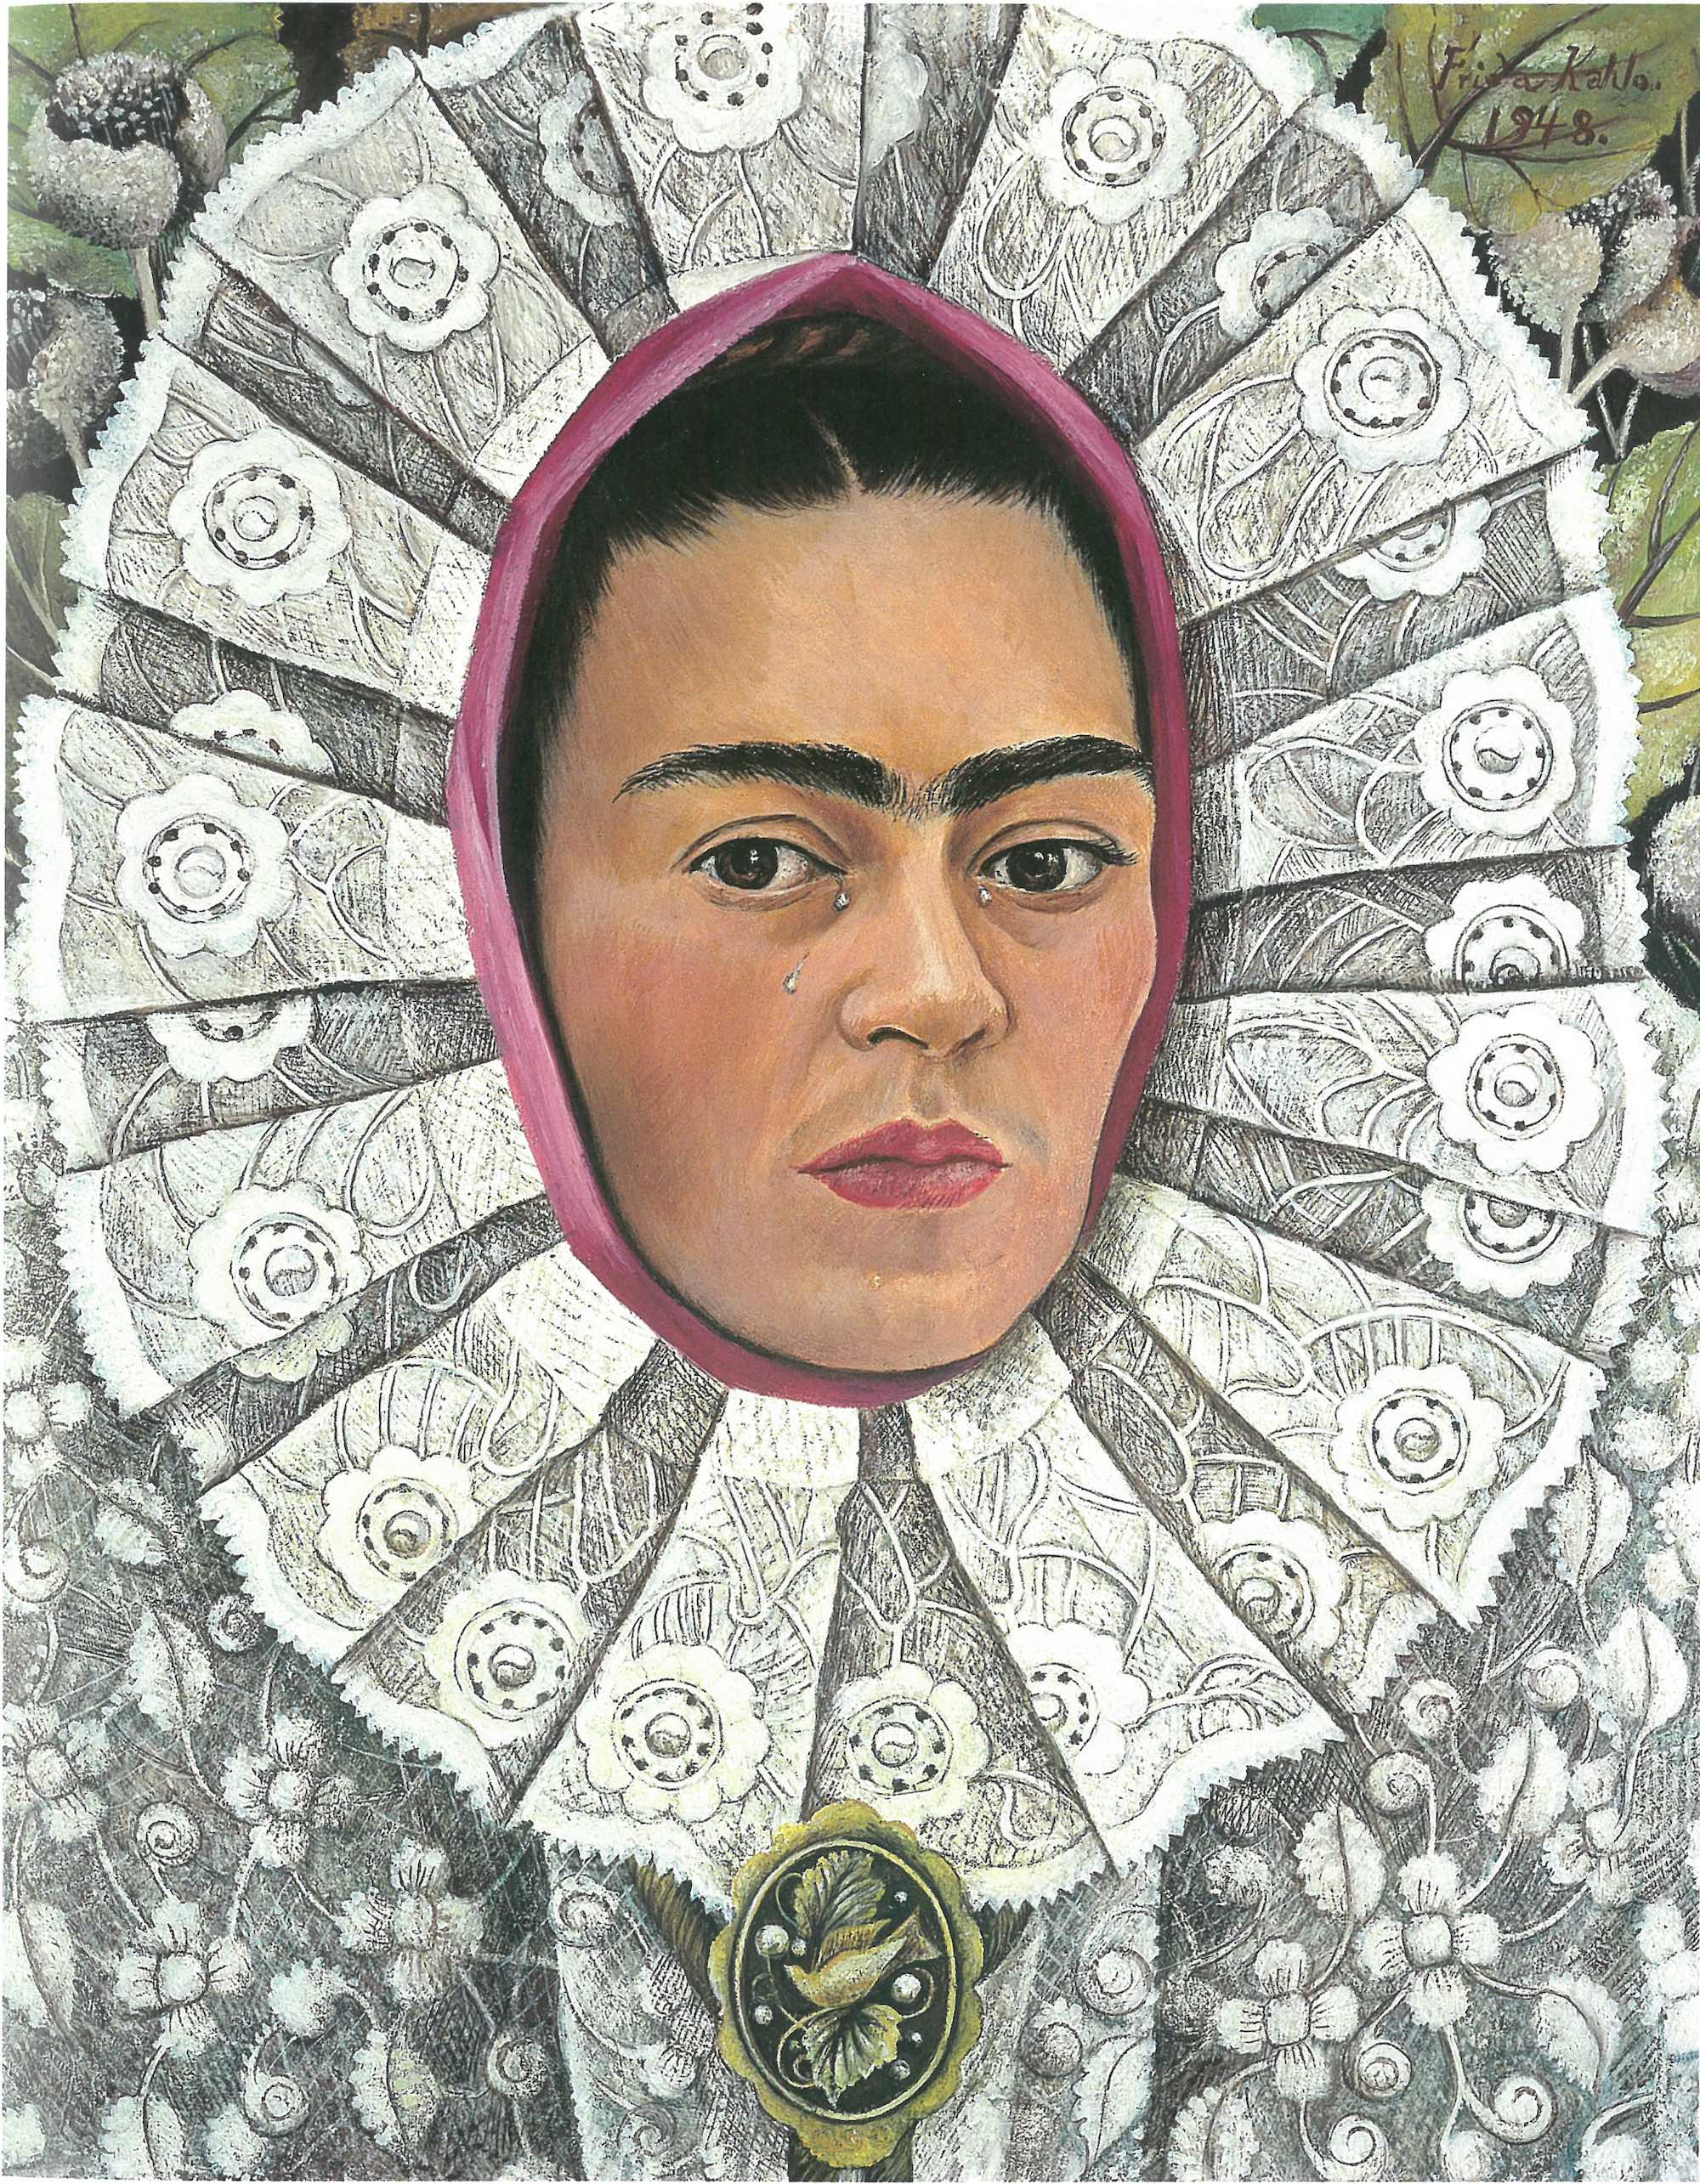 Self-Portrait, Frida Kahlo, 1948 © Private Collection